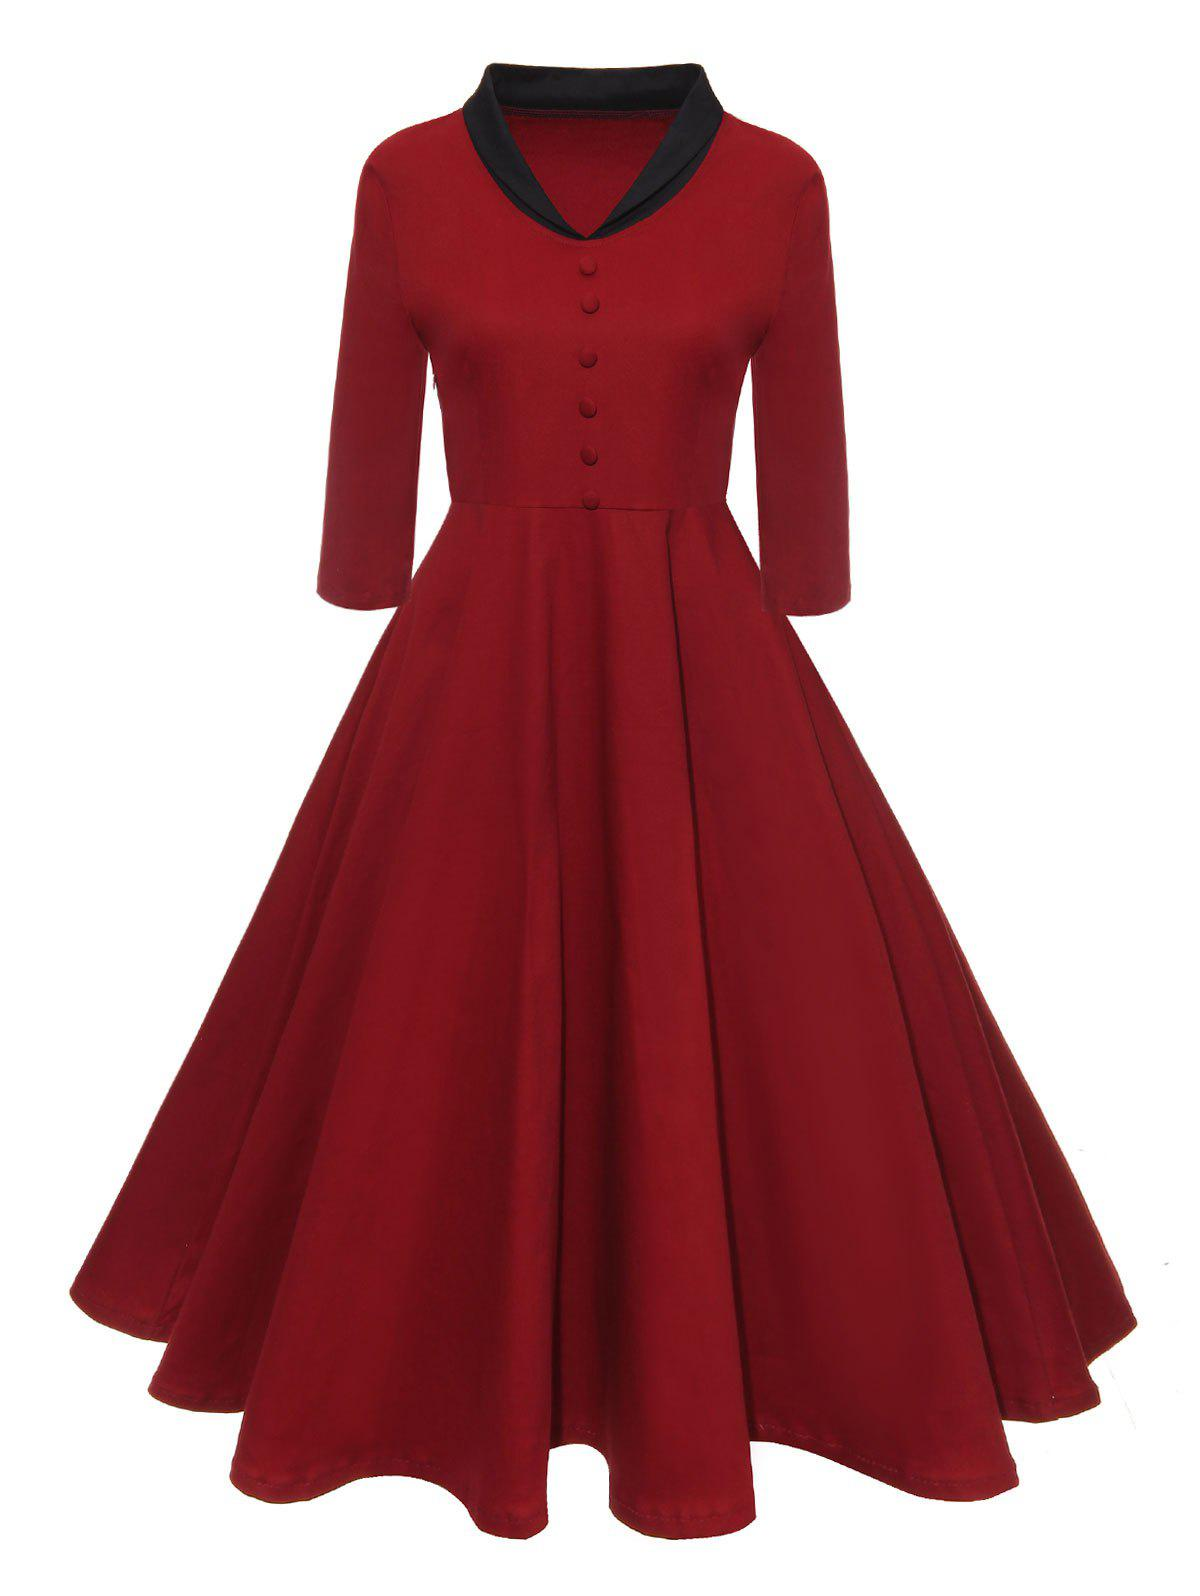 V-neck Half Button Vintage A Line DressWOMEN<br><br>Size: 2XL; Color: RED; Style: Vintage; Material: Polyester,Spandex; Silhouette: A-Line; Dresses Length: Knee-Length; Neckline: V-Neck; Sleeve Length: 3/4 Length Sleeves; Pattern Type: Others; With Belt: No; Season: Fall,Spring; Weight: 0.3700kg; Package Contents: 1 x Dress;